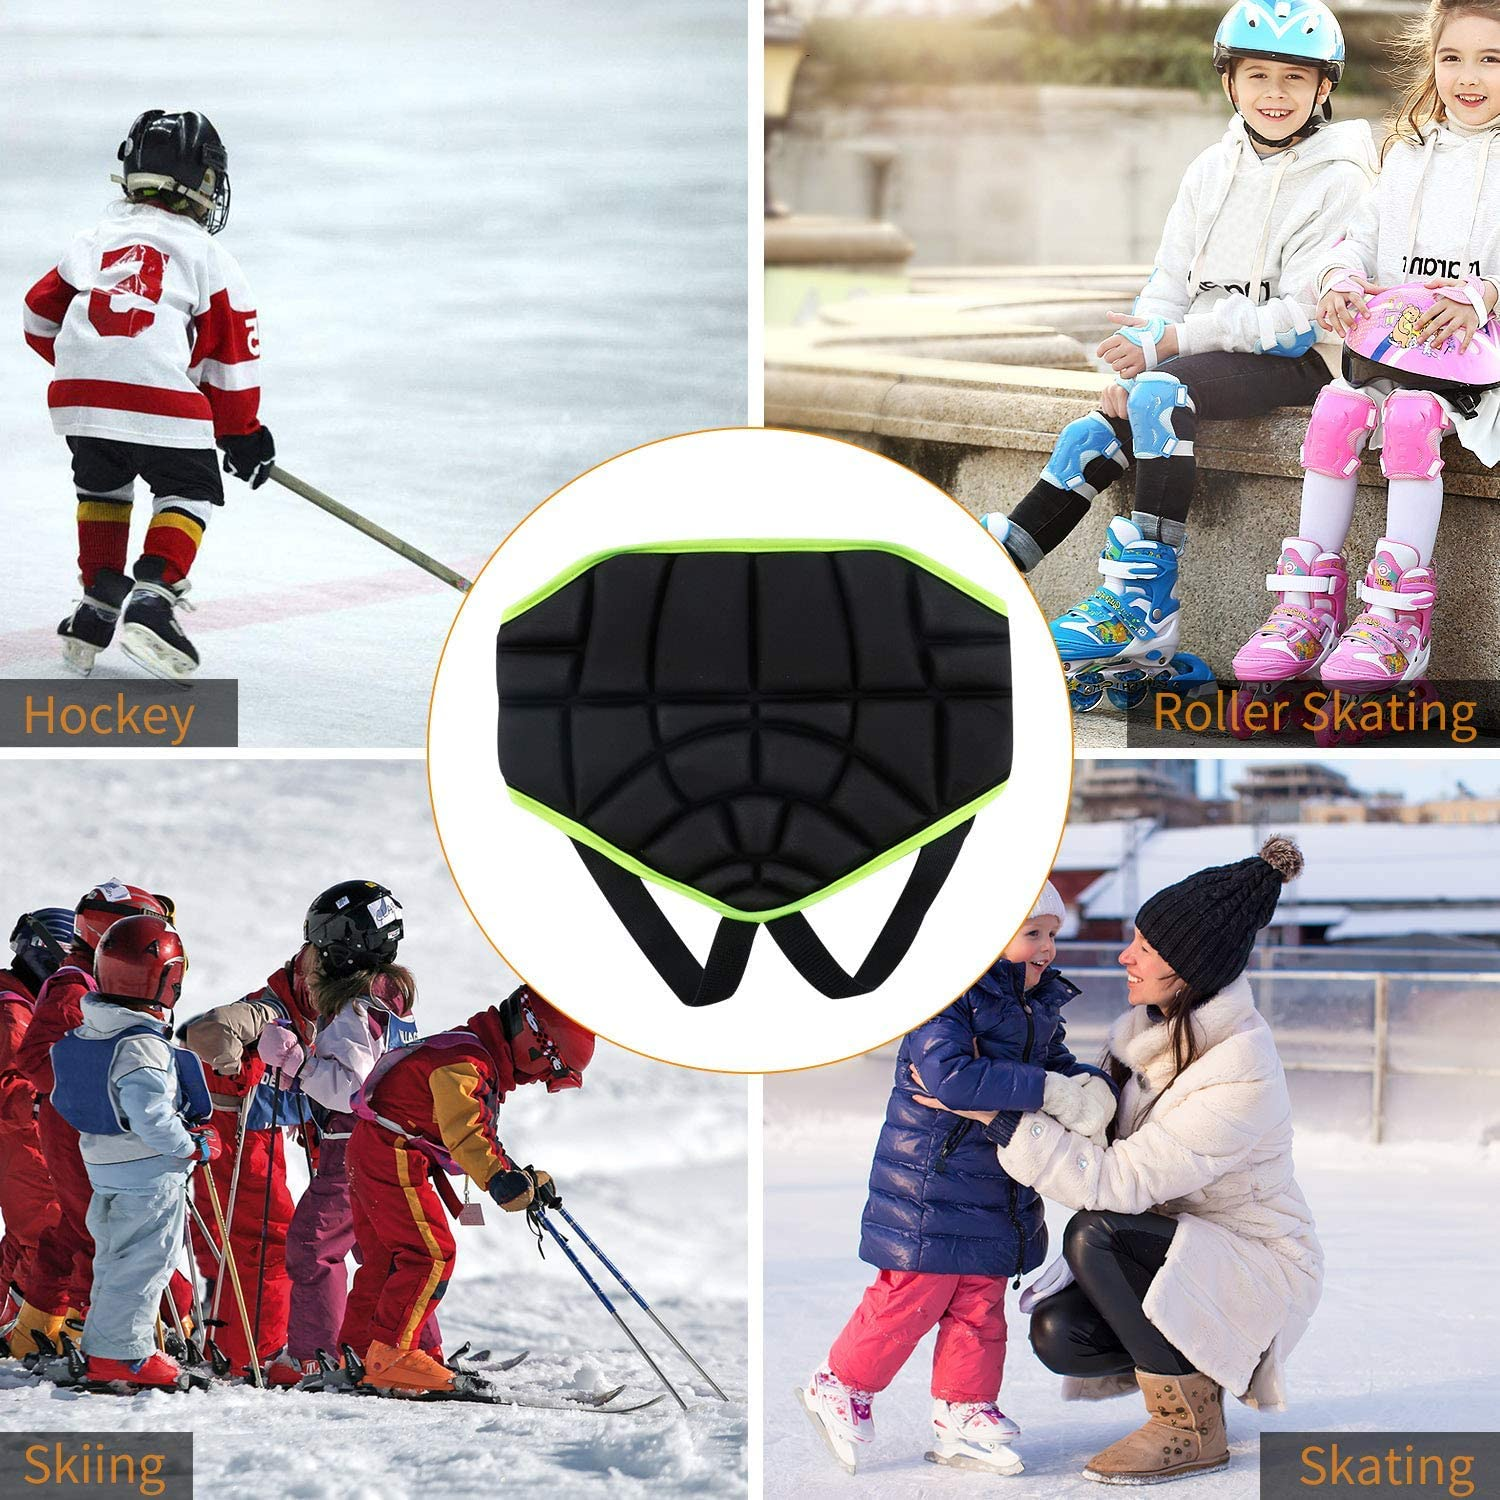 Children Hip Pad Wear-Resistant Thickened EVA Sponge Kids Outer Wearing Anti-Fall Hip Pad Butt Protective Gear Youth Padded Shorts for Roller Skating Skiing Ice Skate Snowboard Hockey Soccer